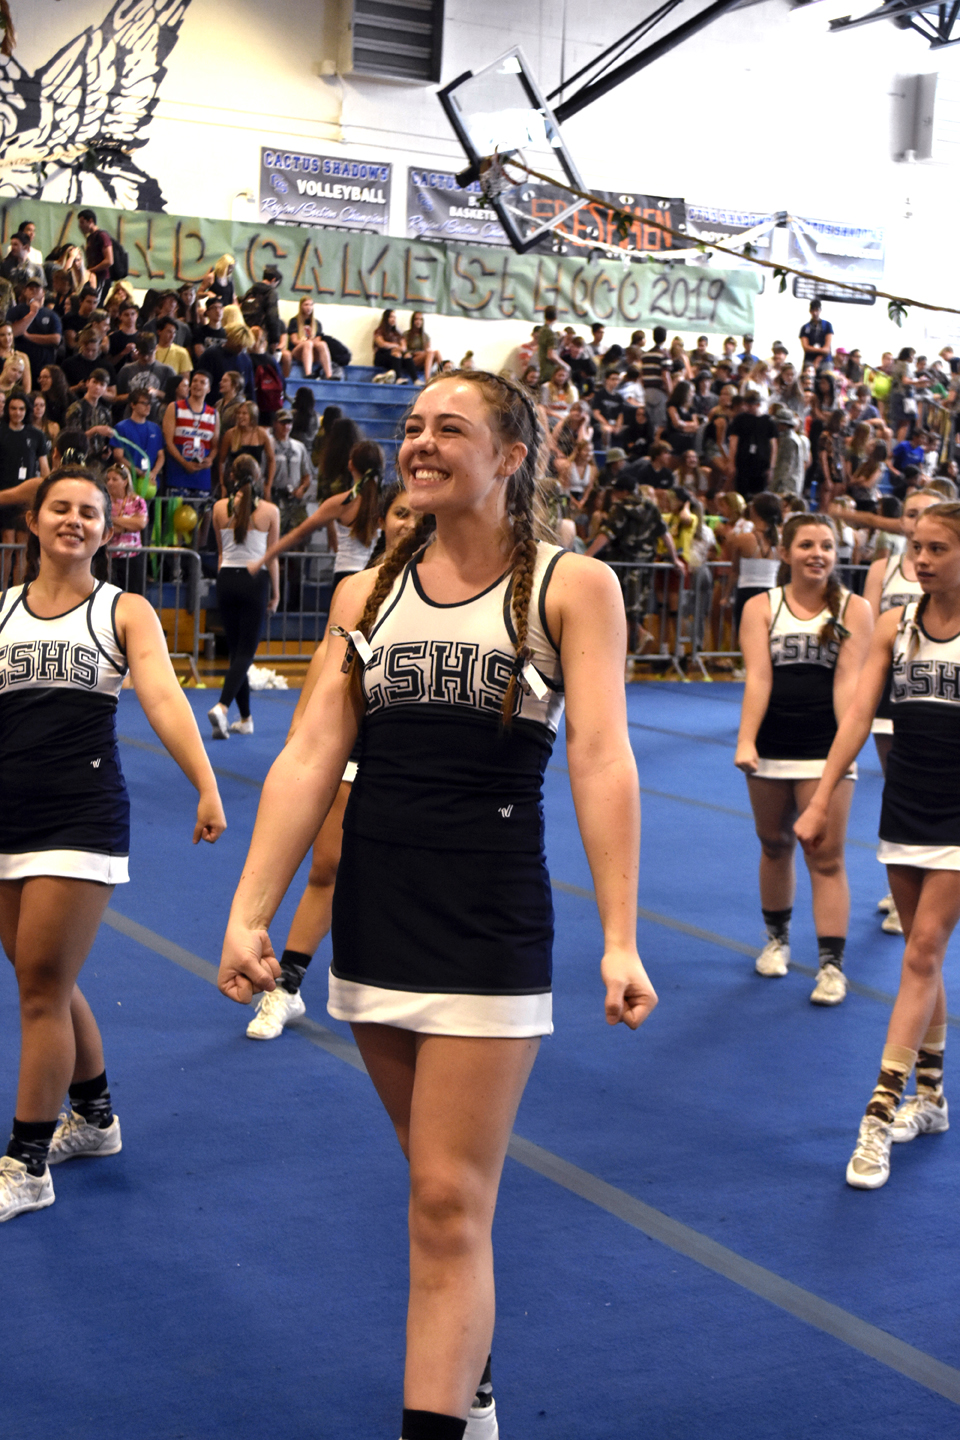 Allie Thompson performs the cheer routine at the pep rally along with her teammates.